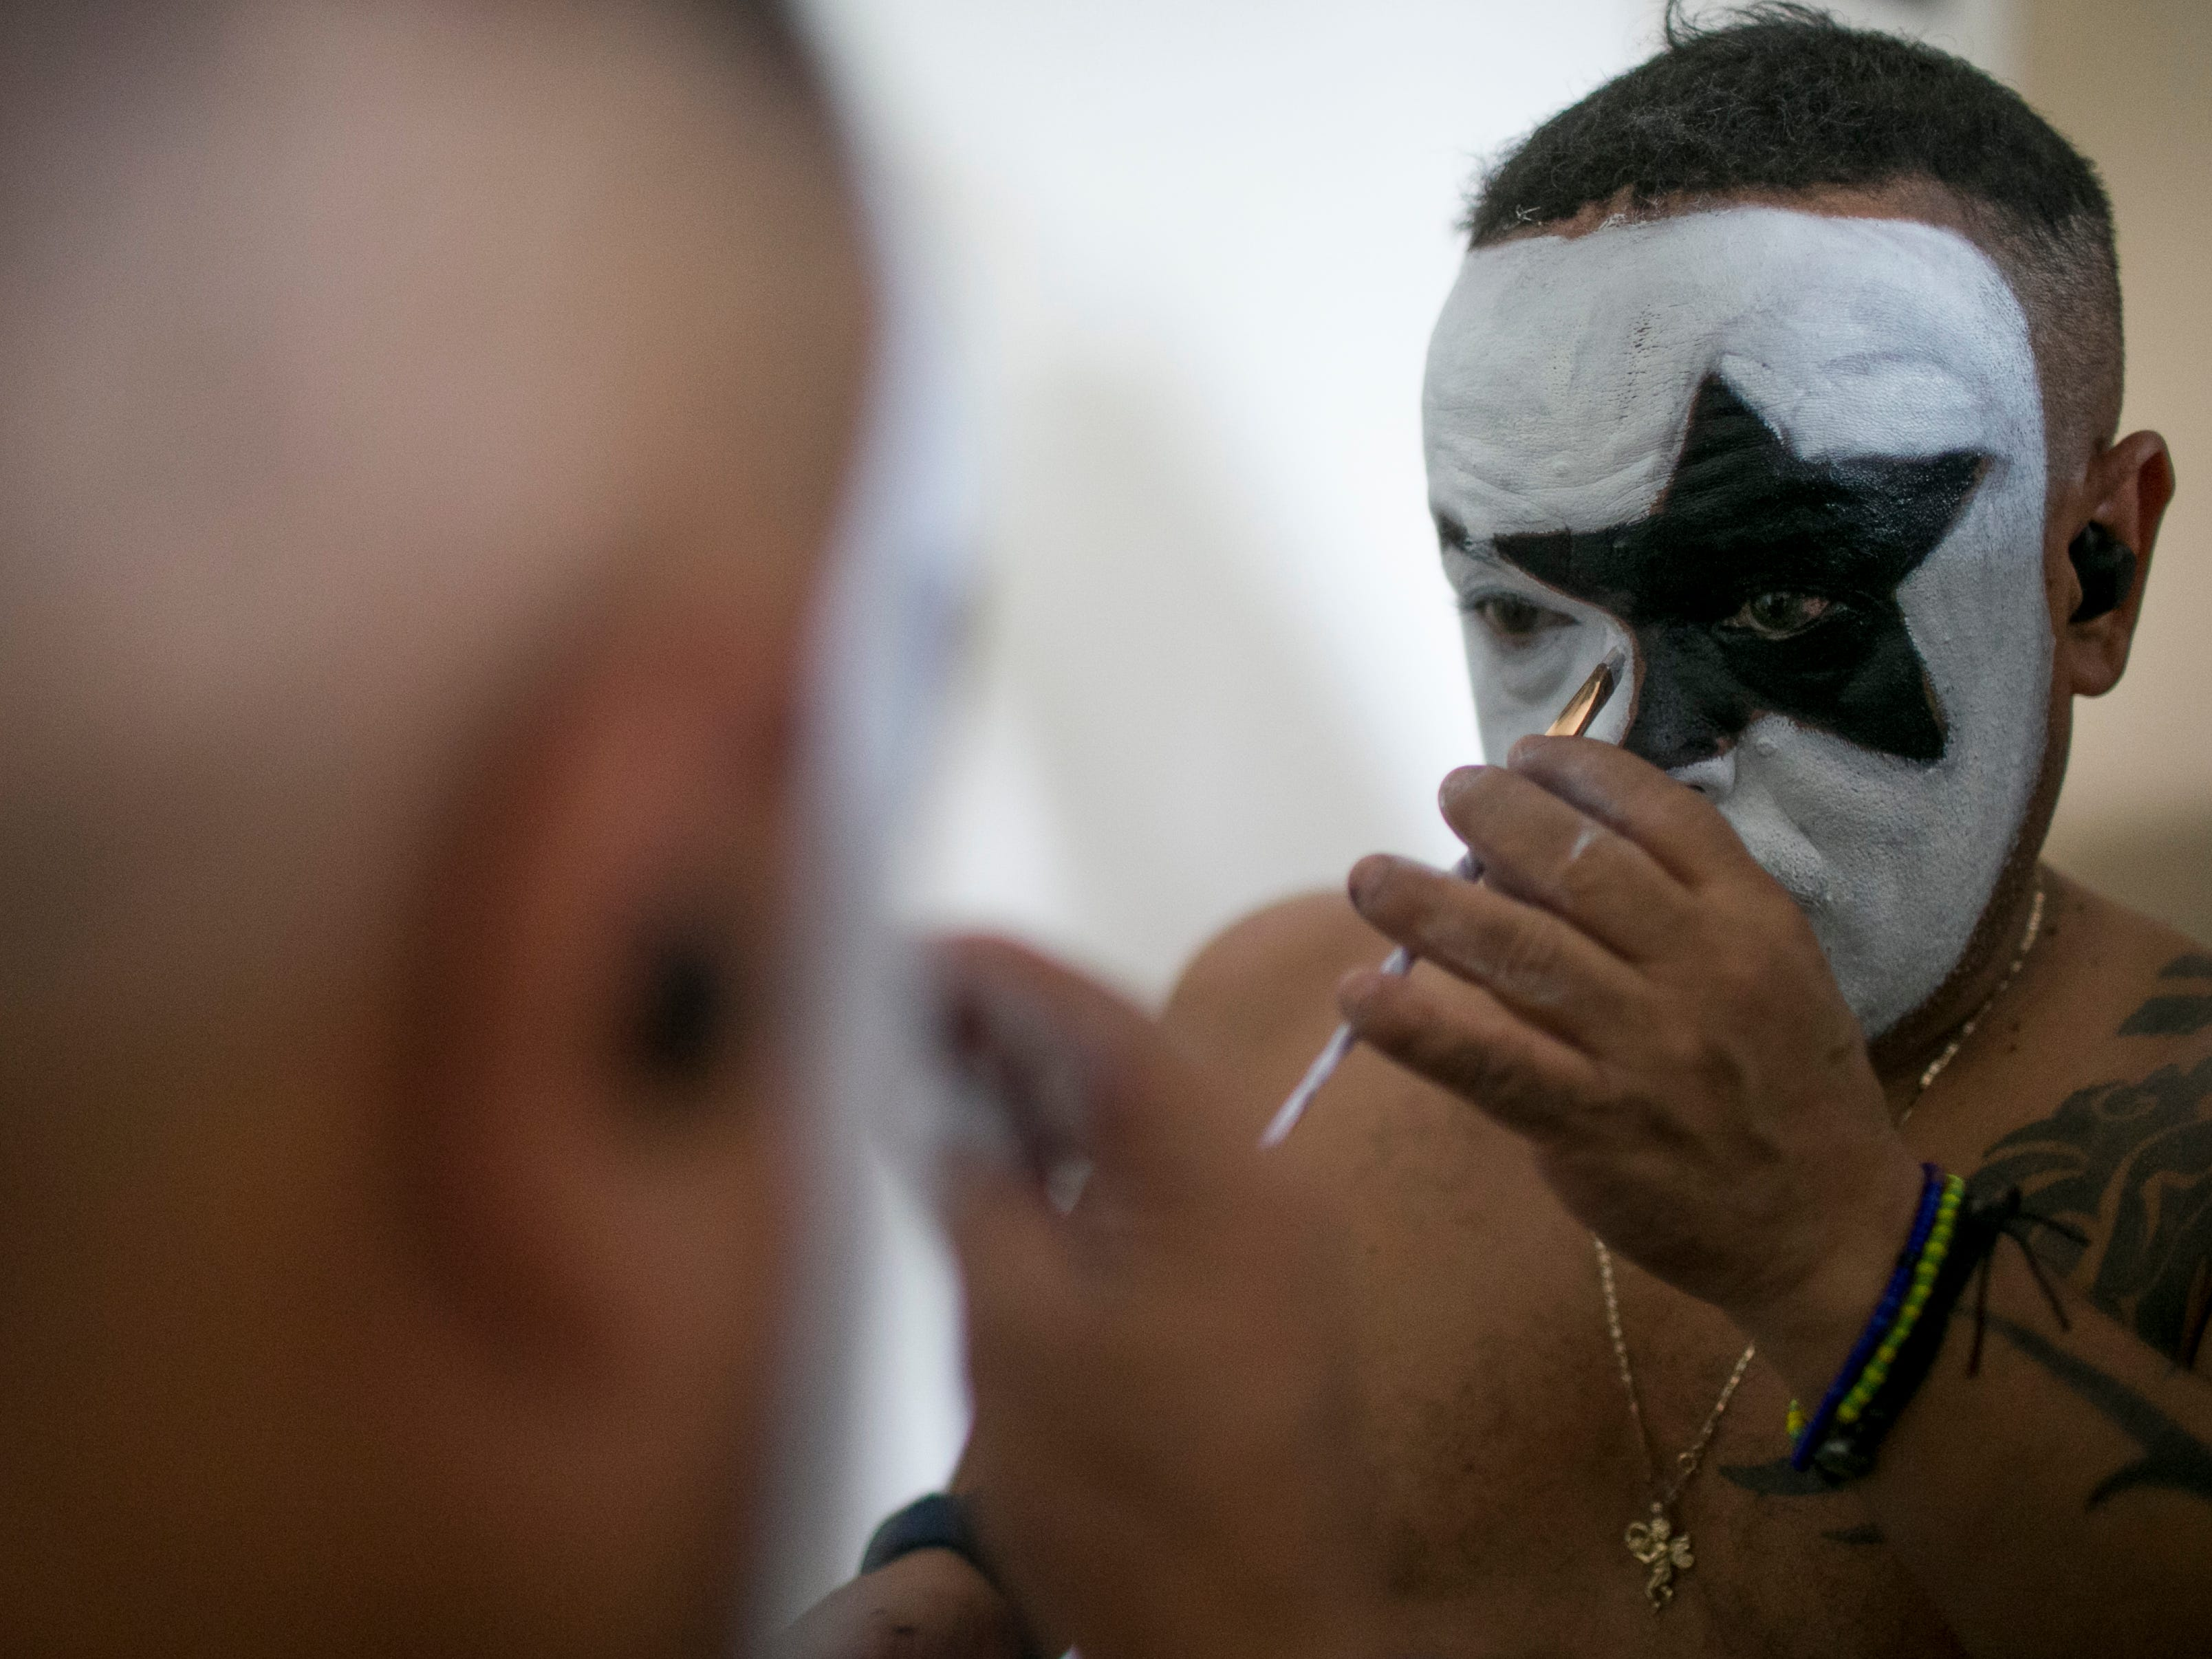 "Pablo Montavlo puts on face makeup before performing with the group, Mini Kiss, at the Arizona State Fair in Phoenix on Saturday, Oct. 6, 2018. Montavlo was performing as ""Mini-Paul"" for the show that night."